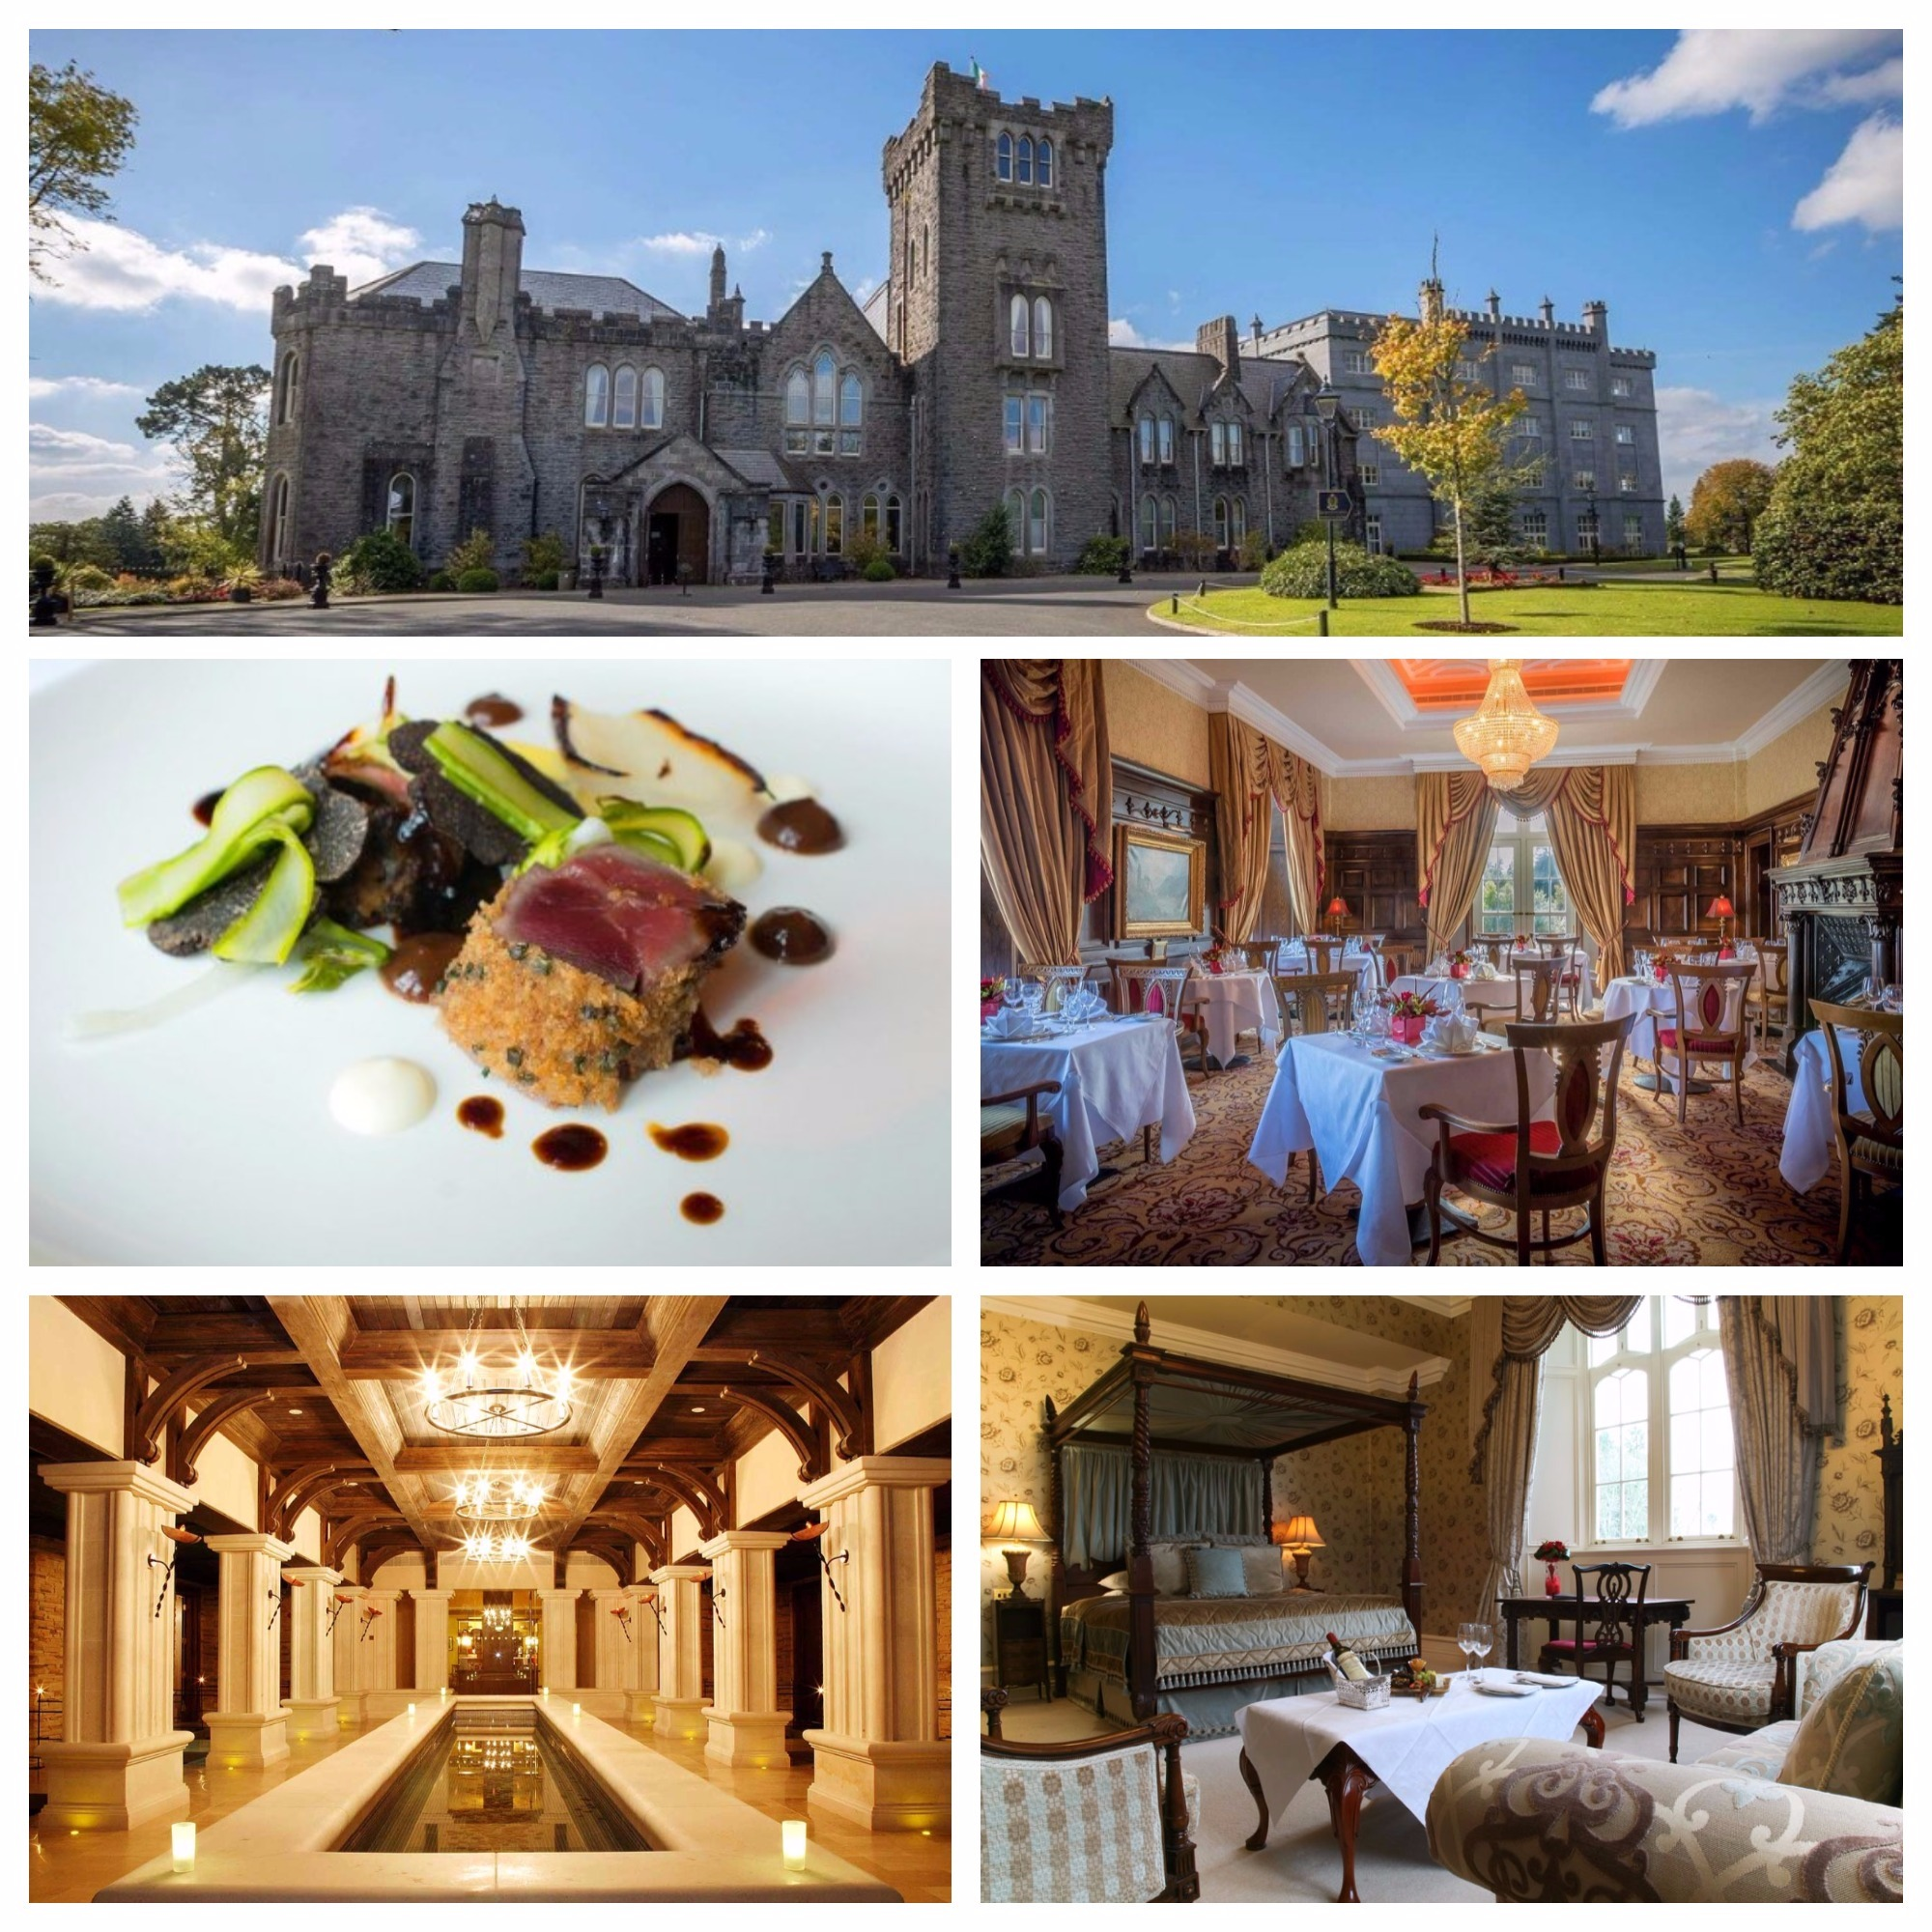 deal of the day-kilronan castle-roscommon-douglas hyde restaurant-5 course meal-castle break-culinary break-staycation